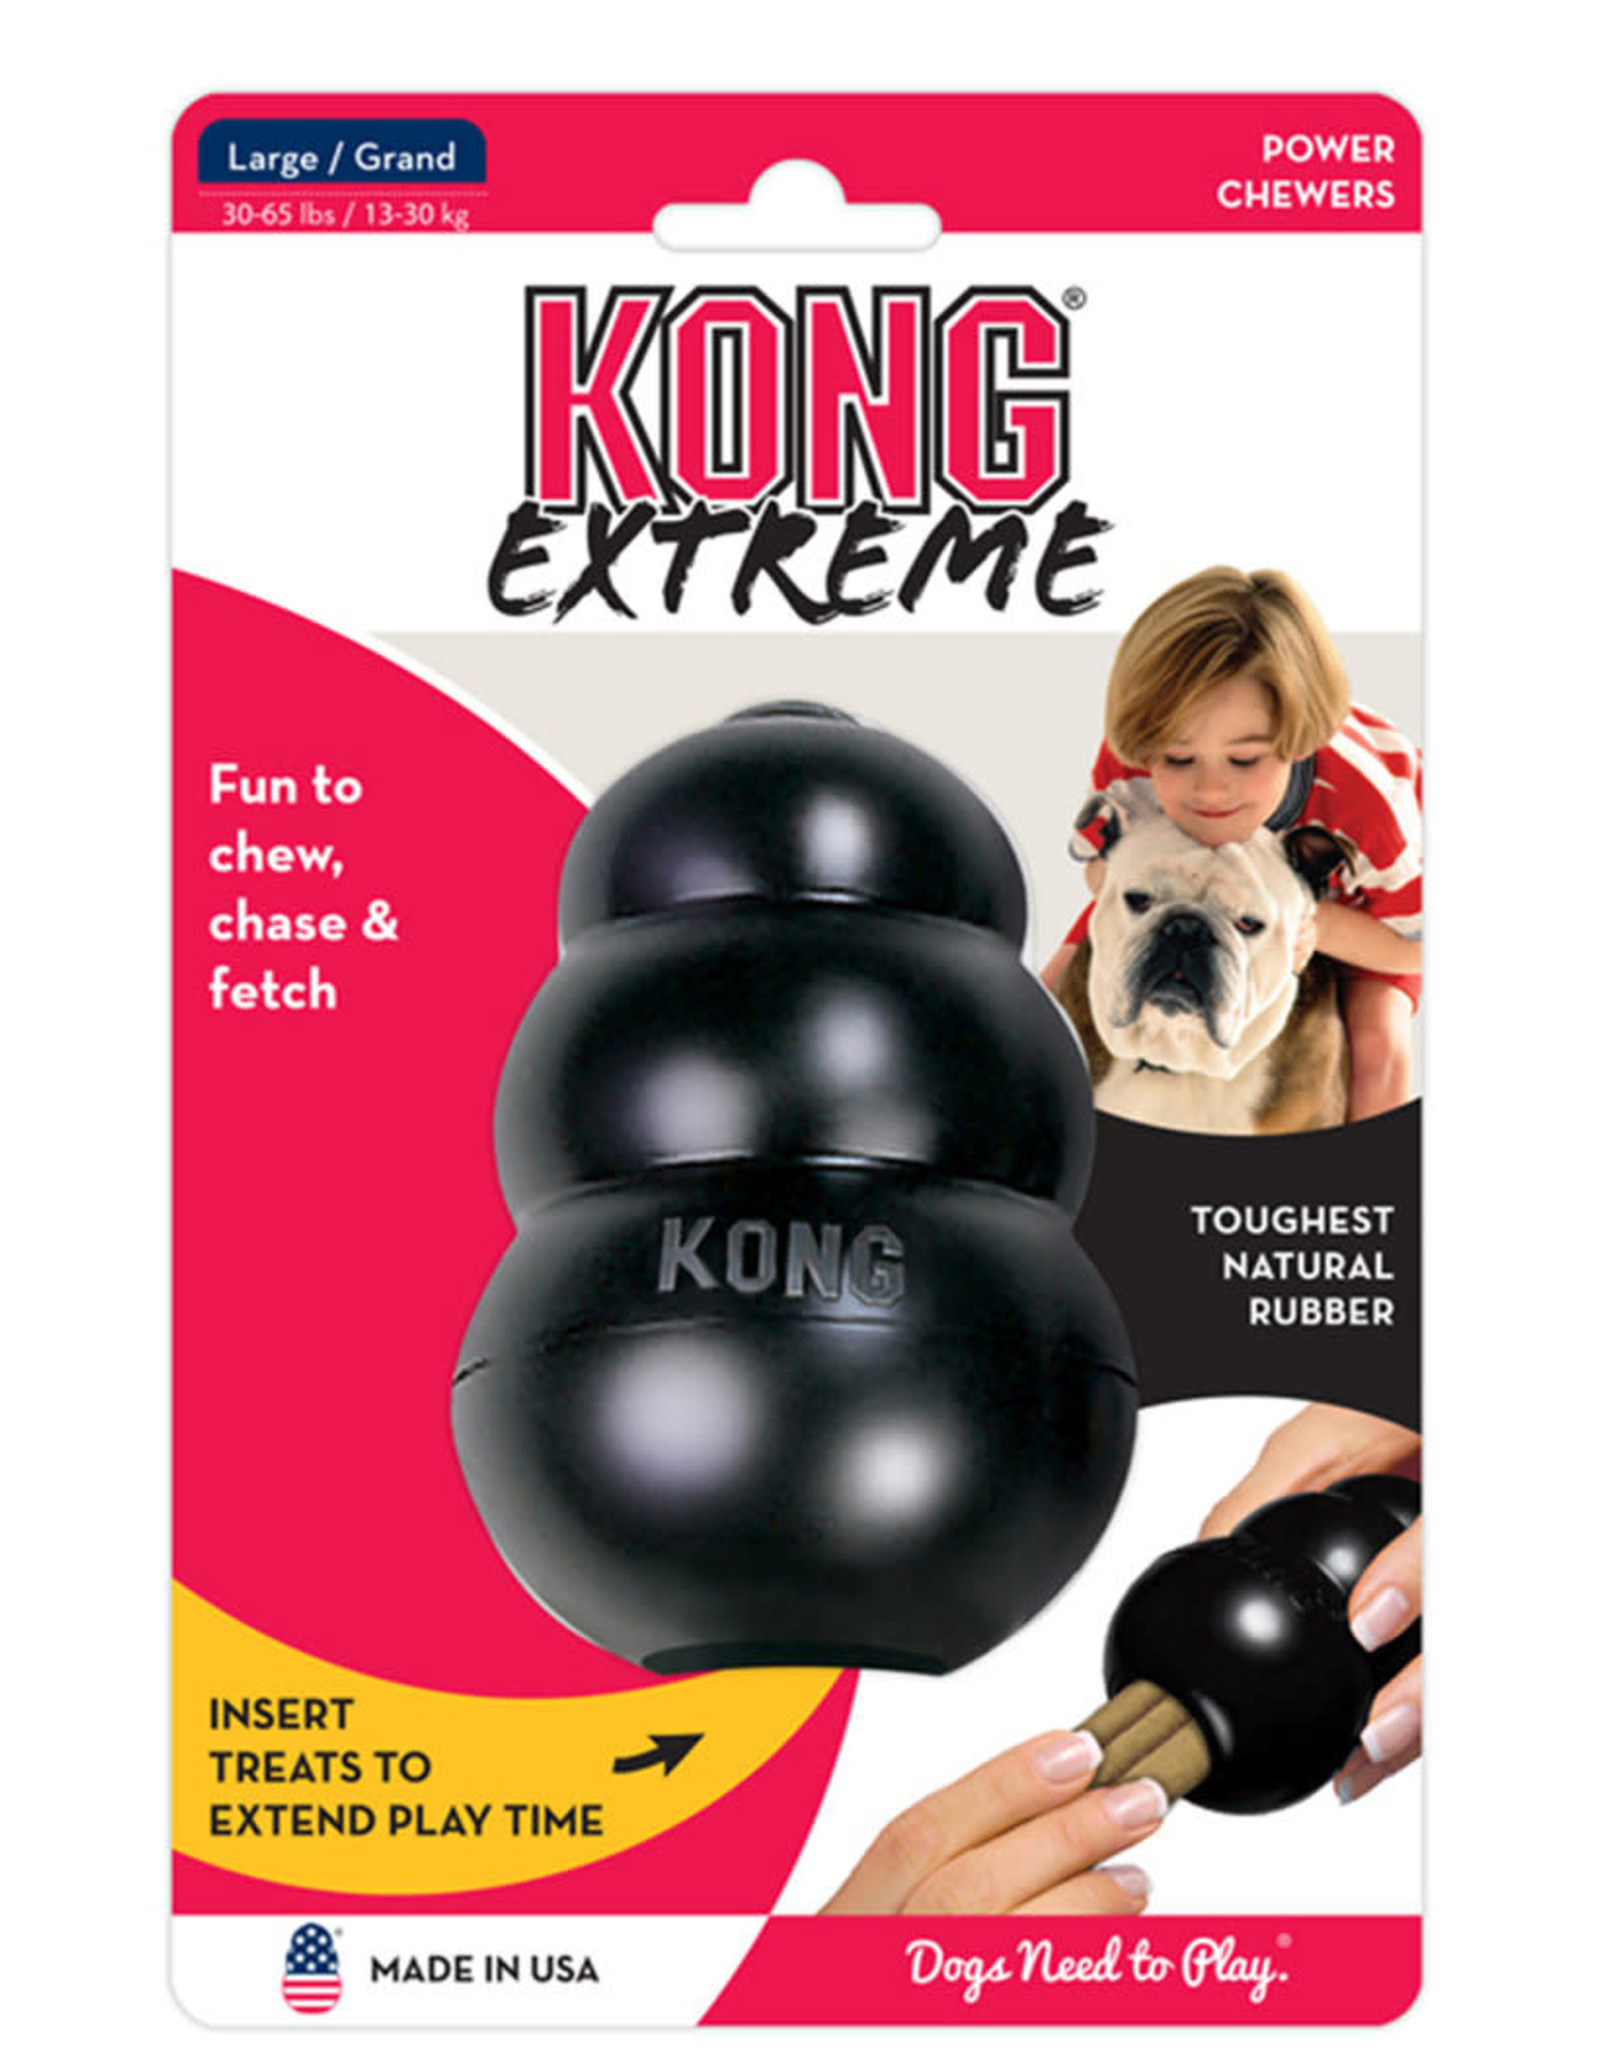 KONG EXTREME LARGE BLACK